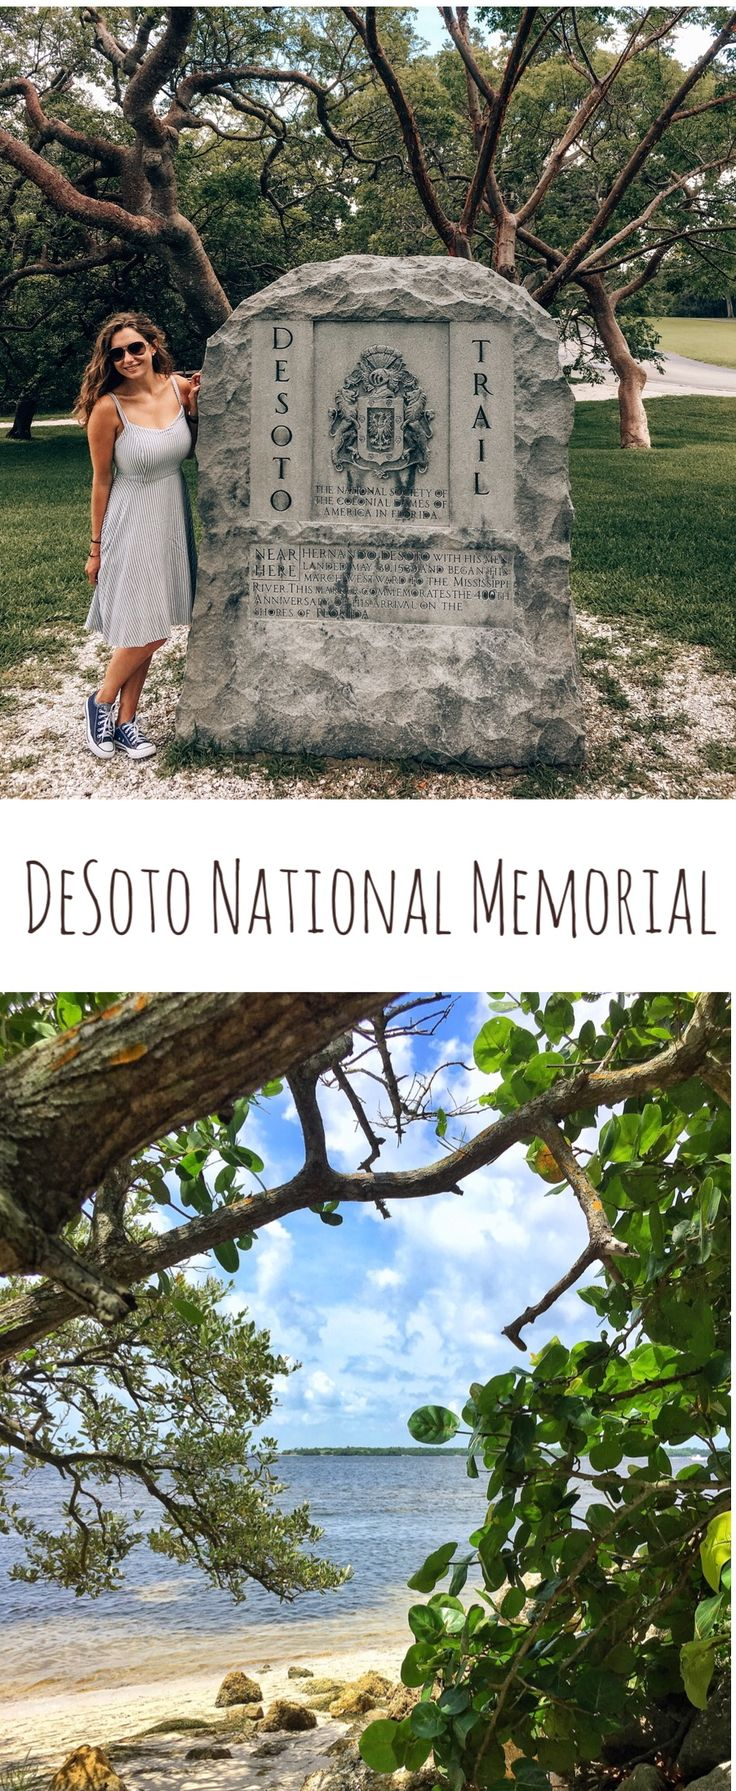 DeSoto National Memorial, a piece of history on the West Coast of Florida